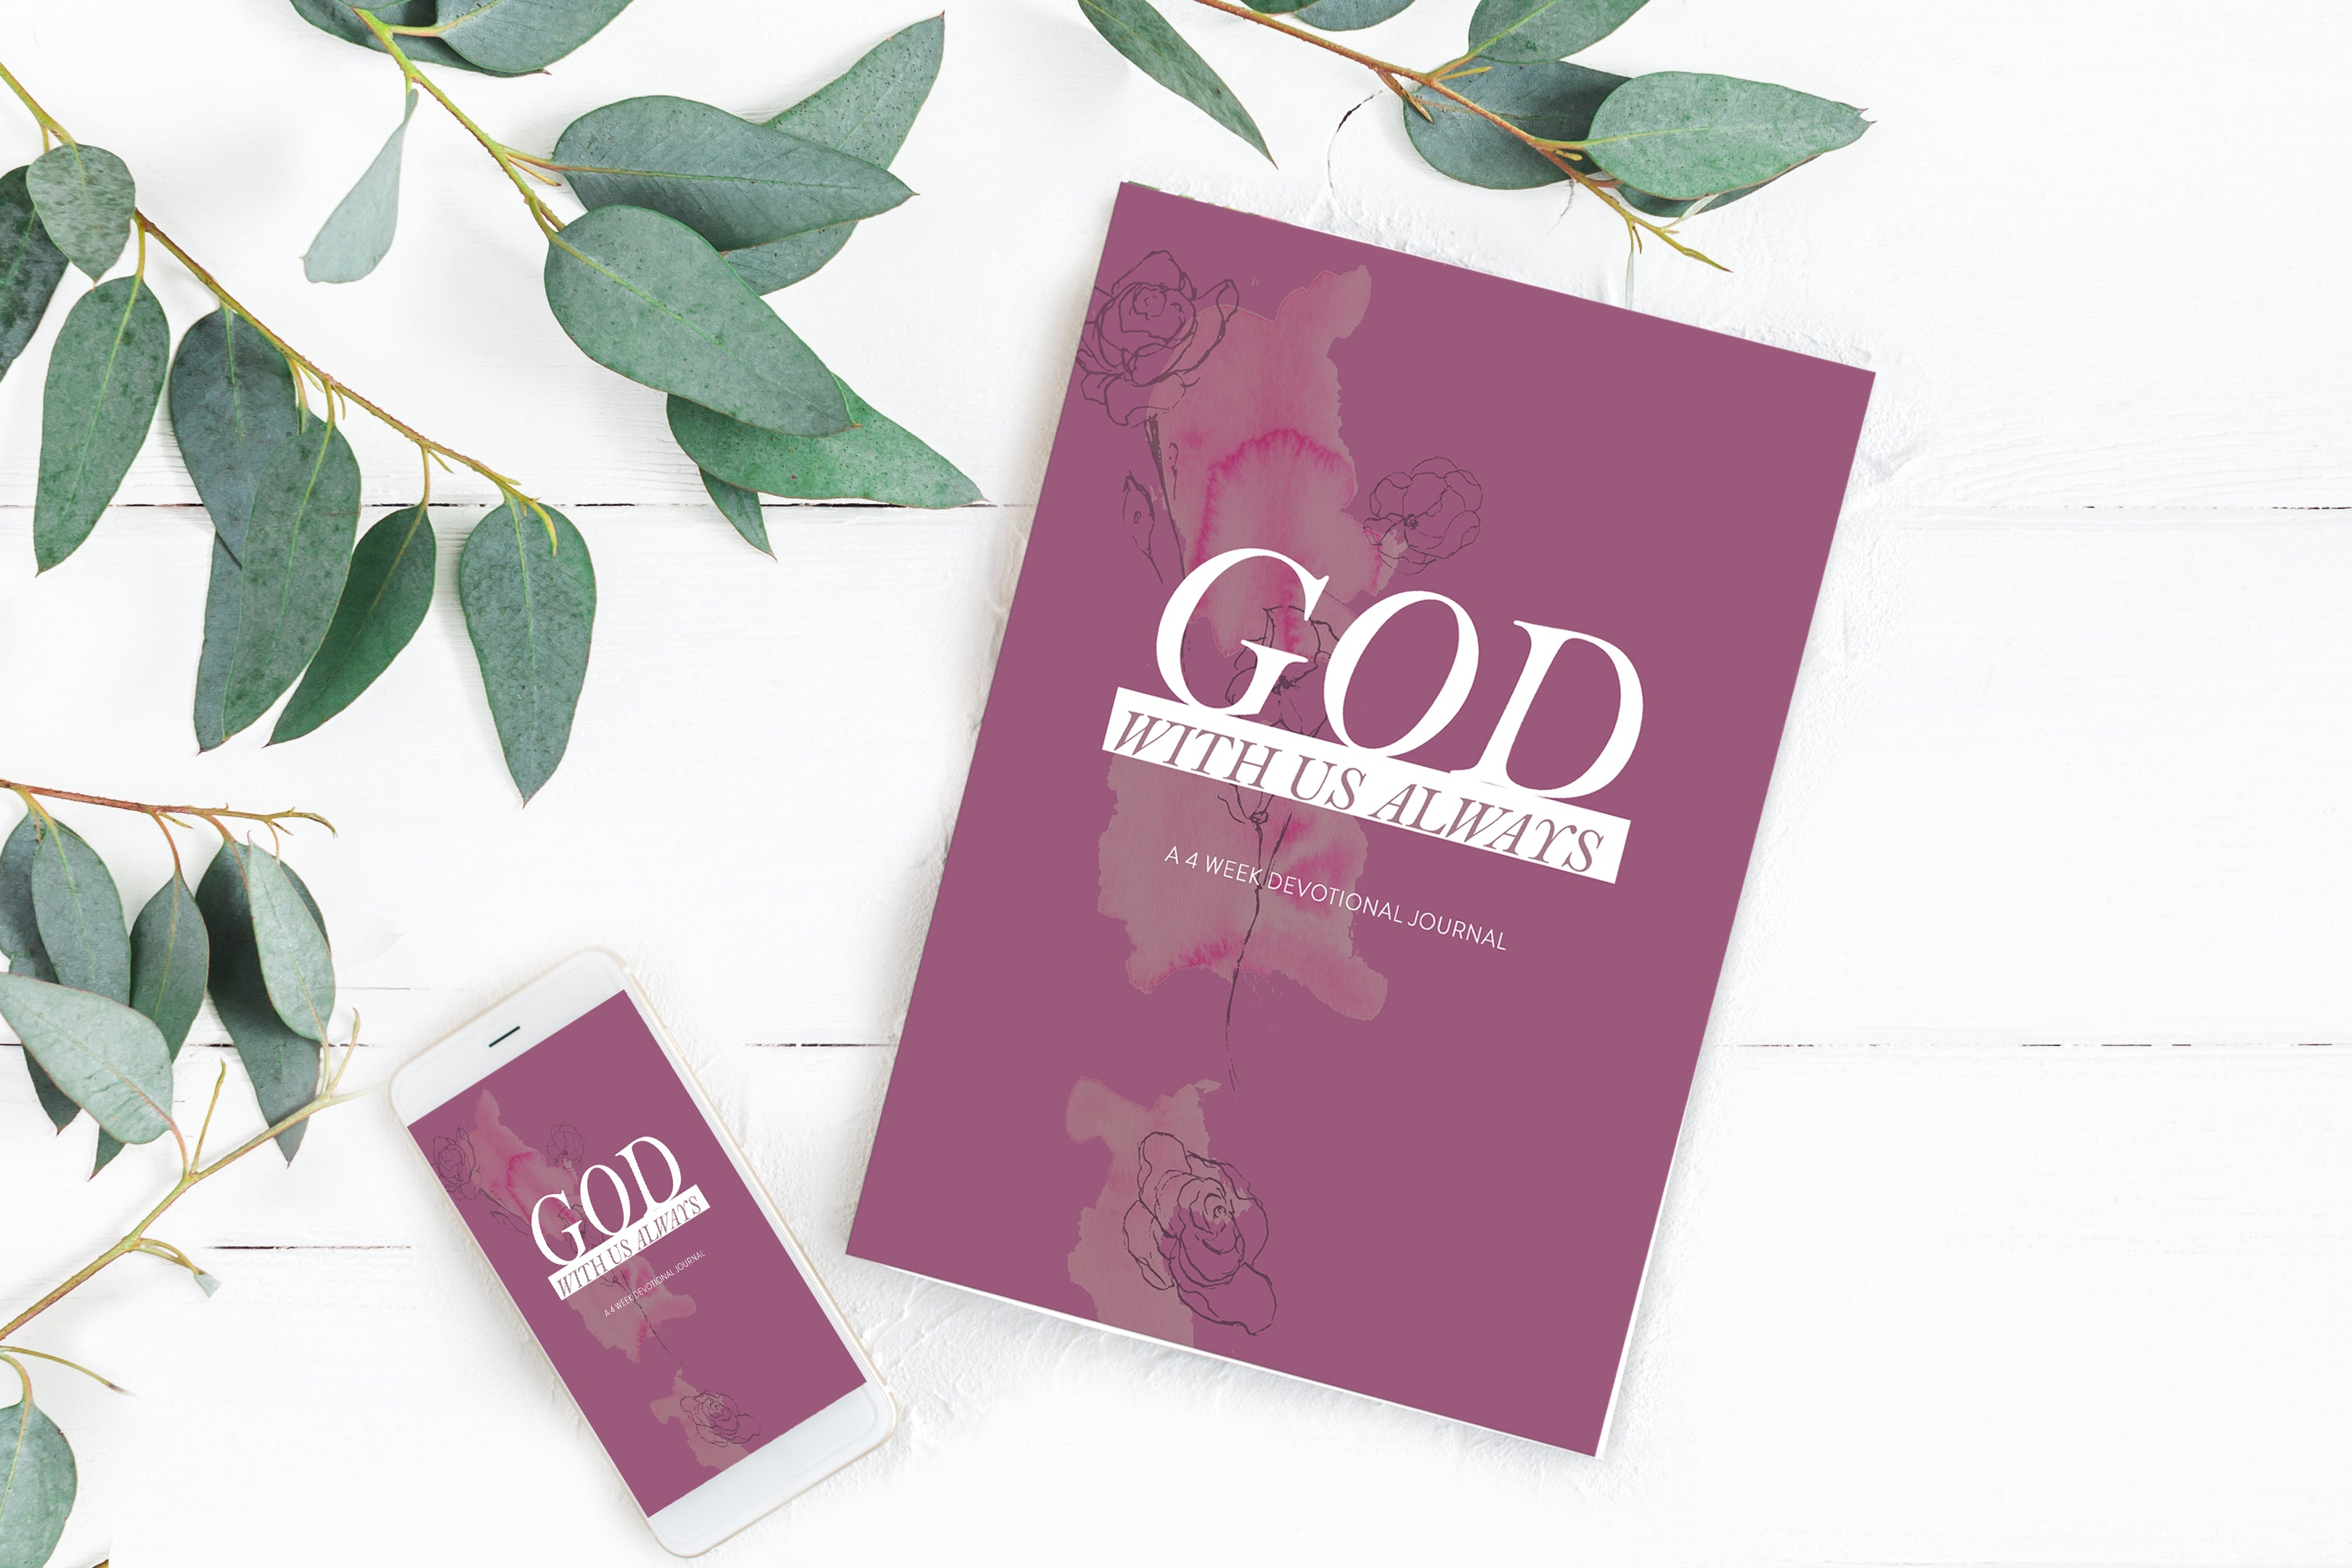 God with Us Always: 4 Week Devotional - Printables